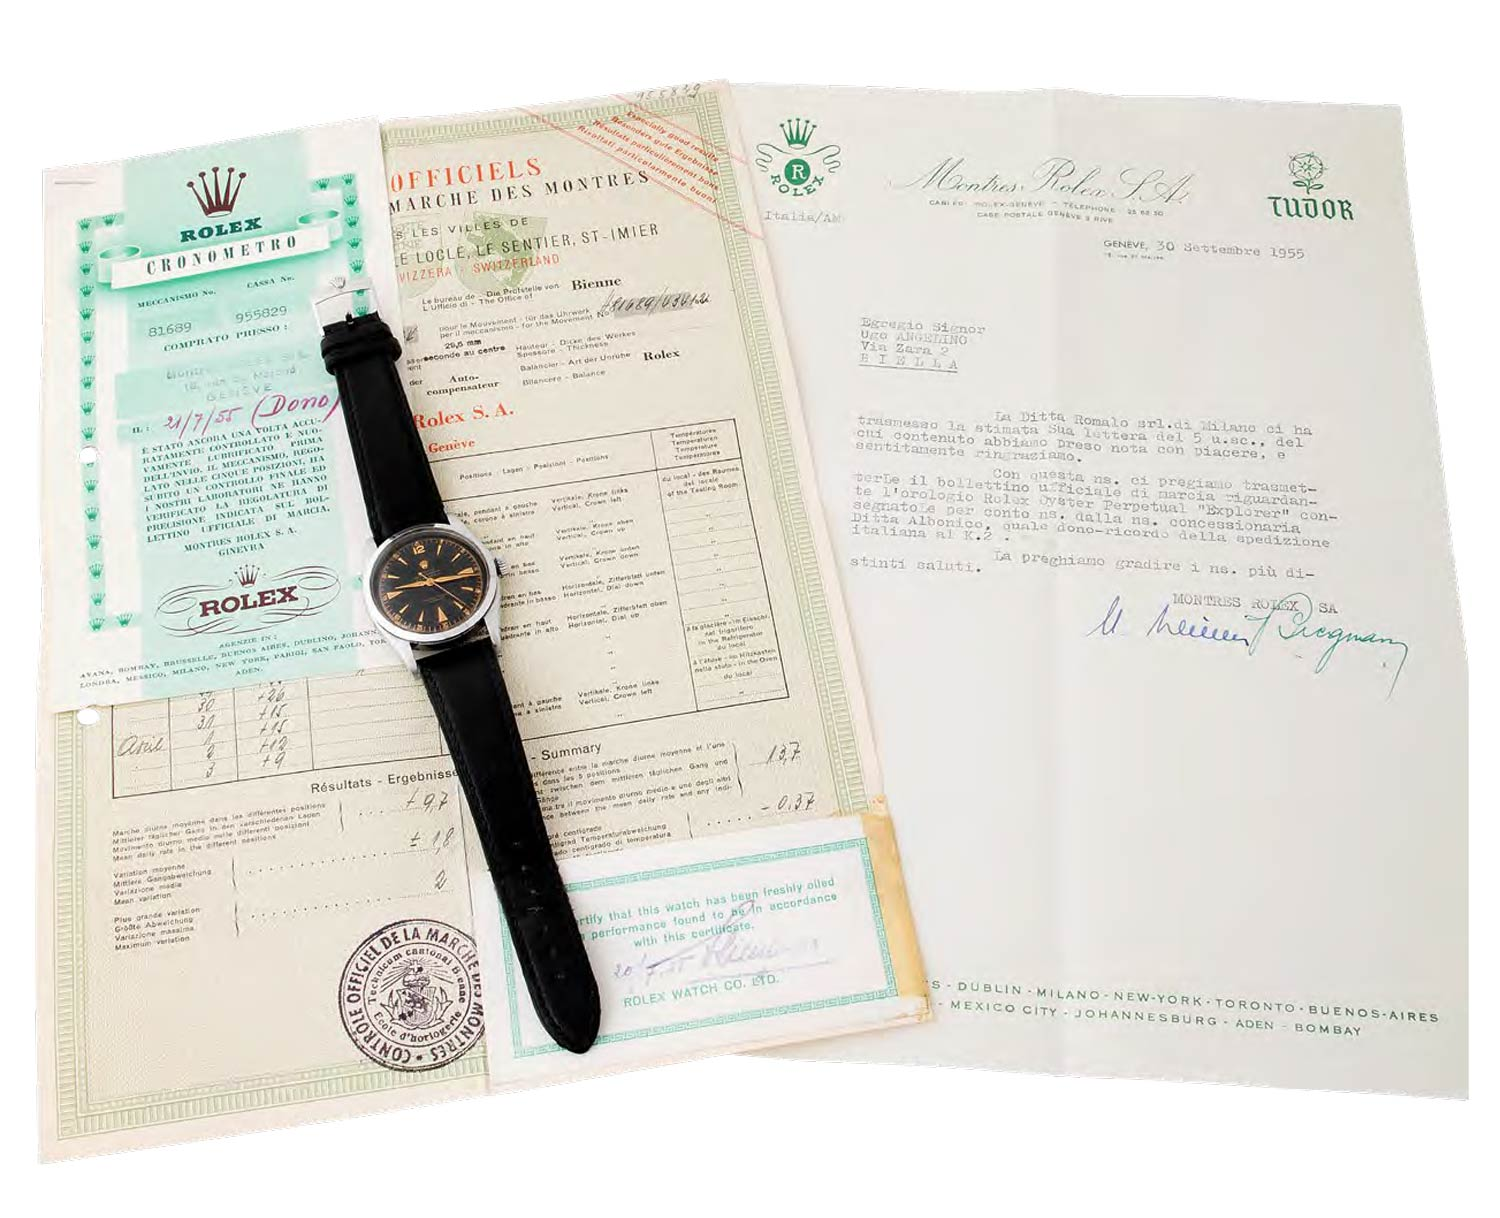 Accompanied by its original certificate, bulletin, and original Rolex letter